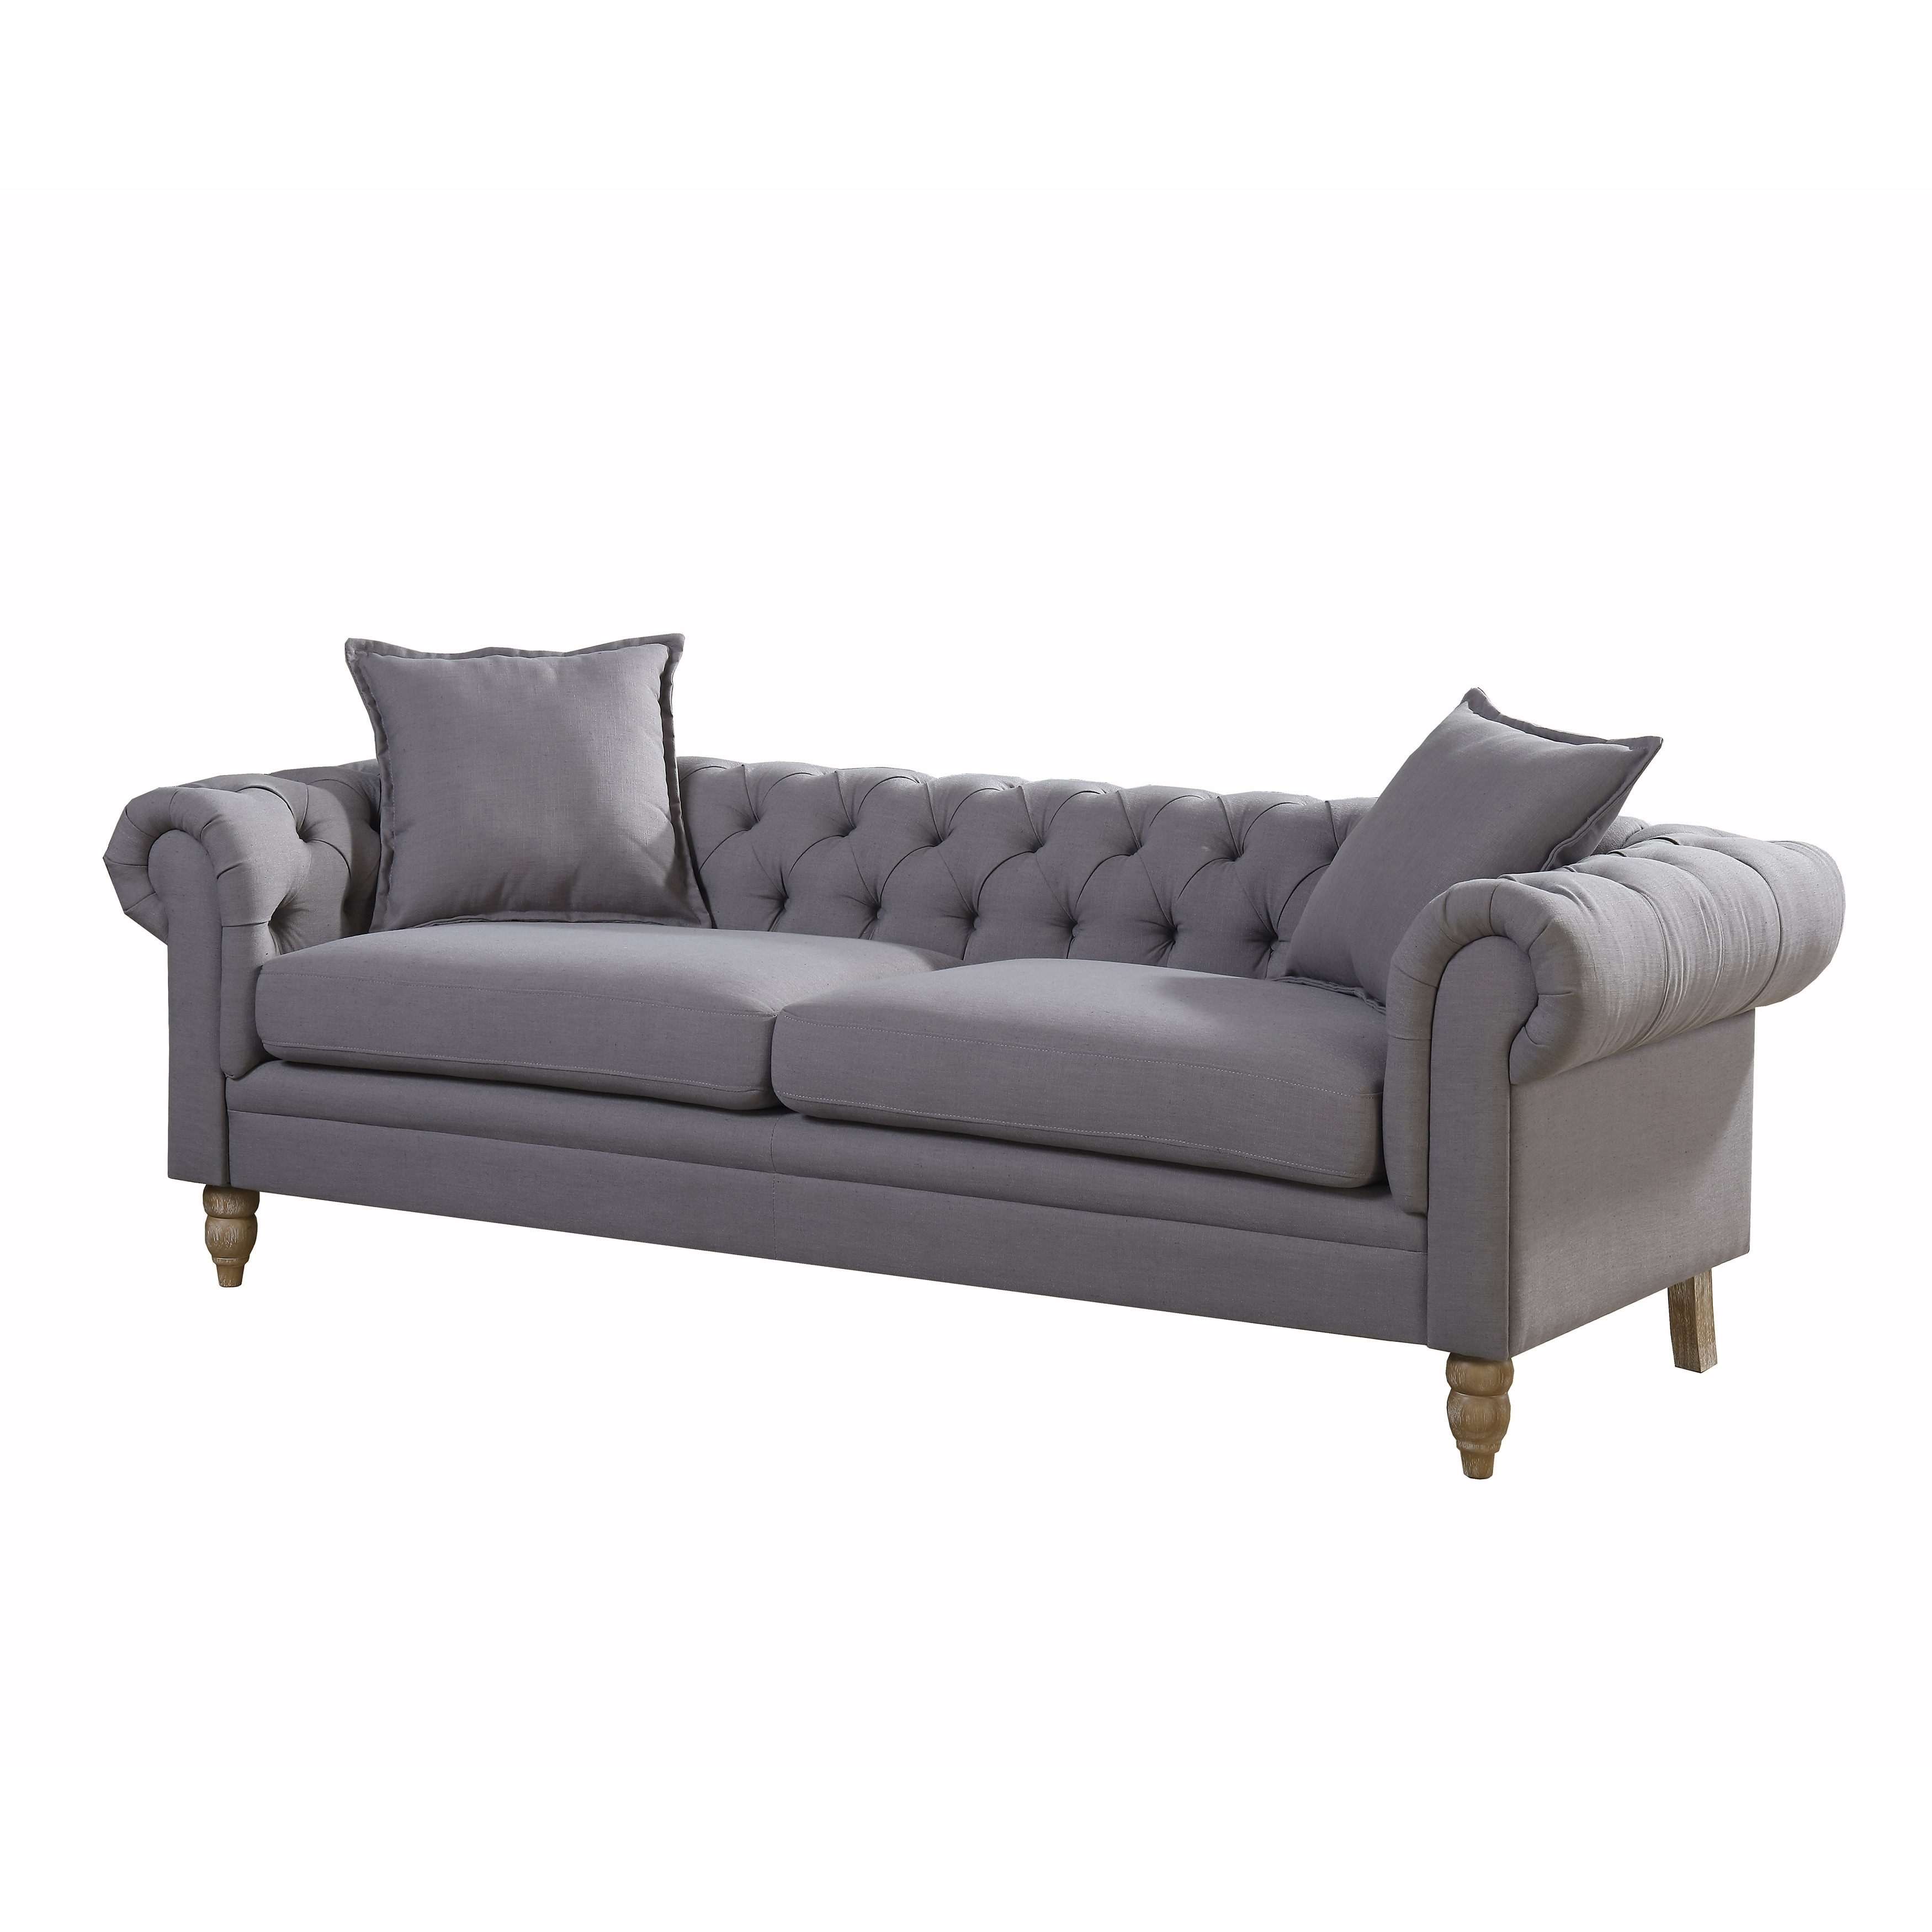 Sofa Bed Express Delivery Shop Christies Home Living Juliet Small Chesterfield Linen Fabric